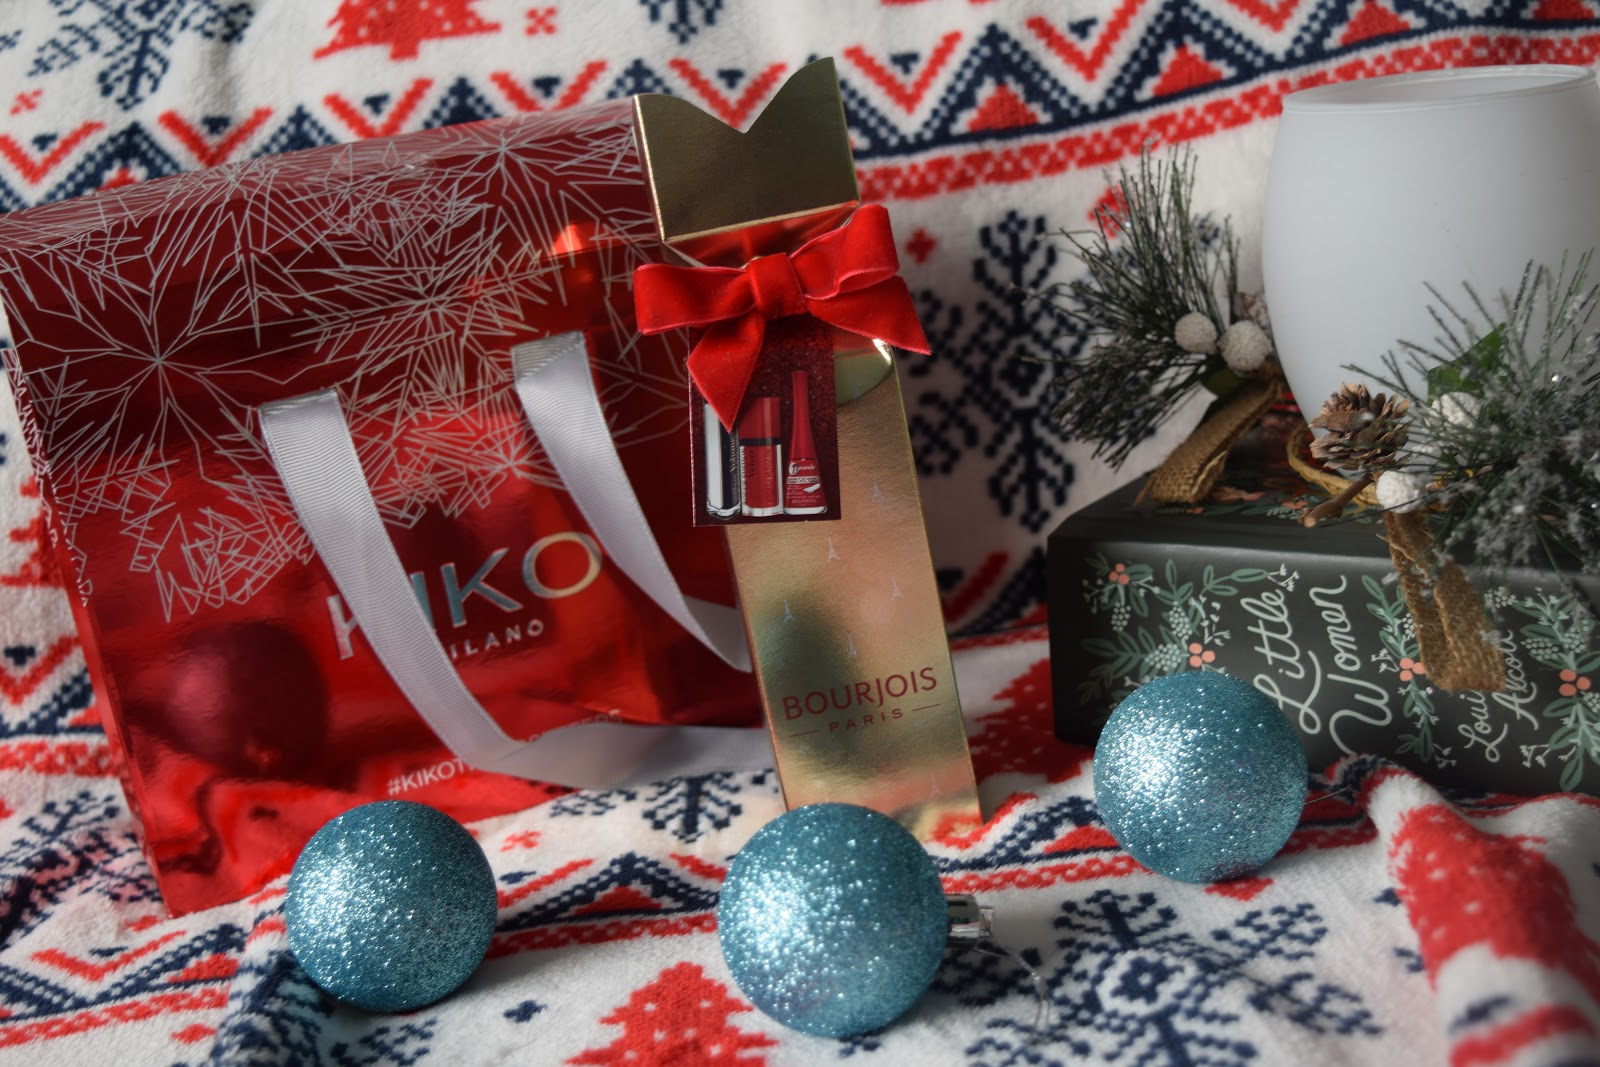 Blogmas Day 2: A cheeky beauty haul